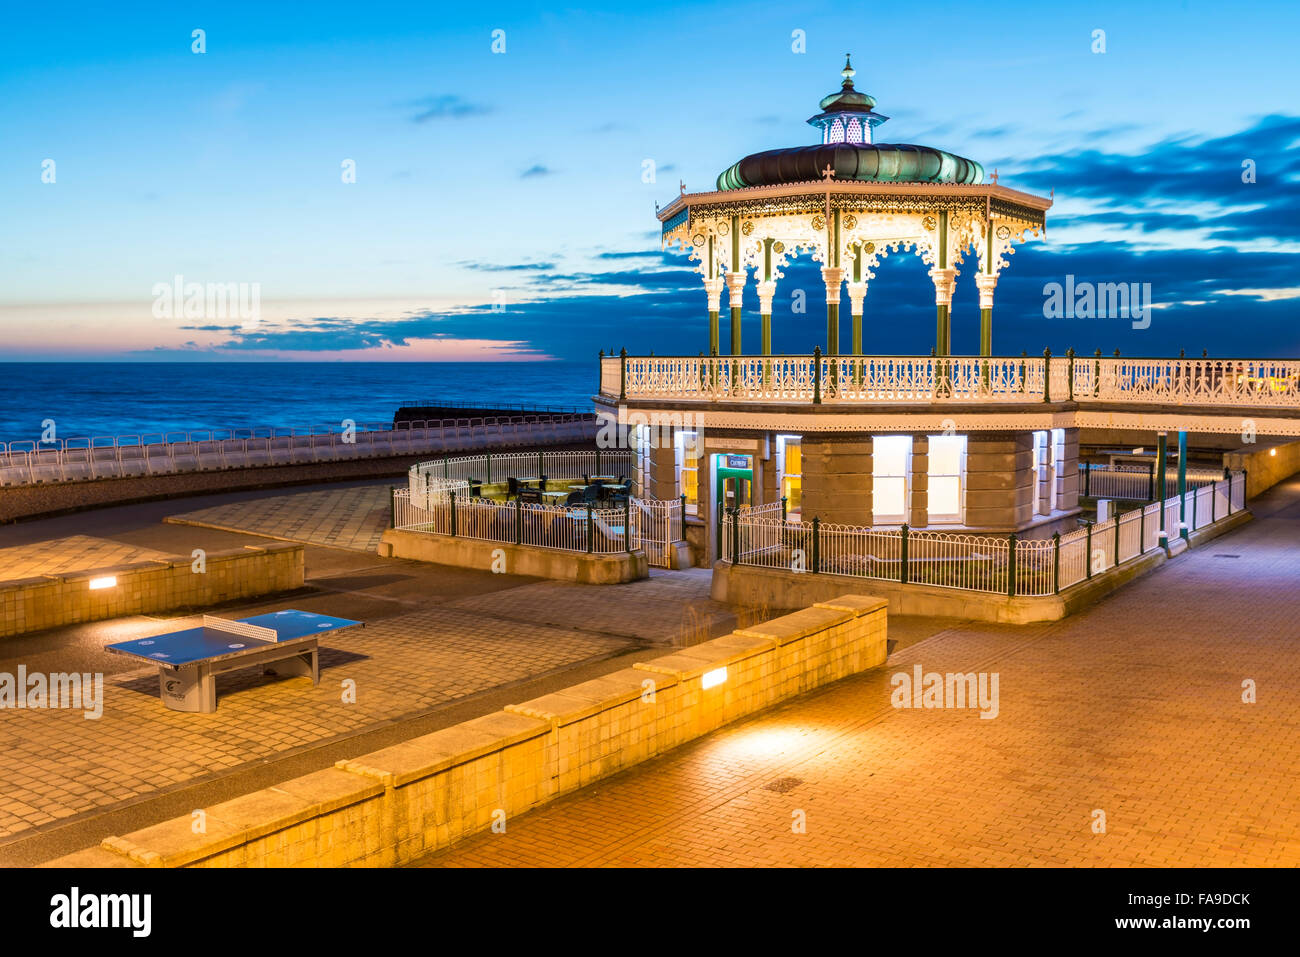 Evening bandstand, Brighton - Stock Image